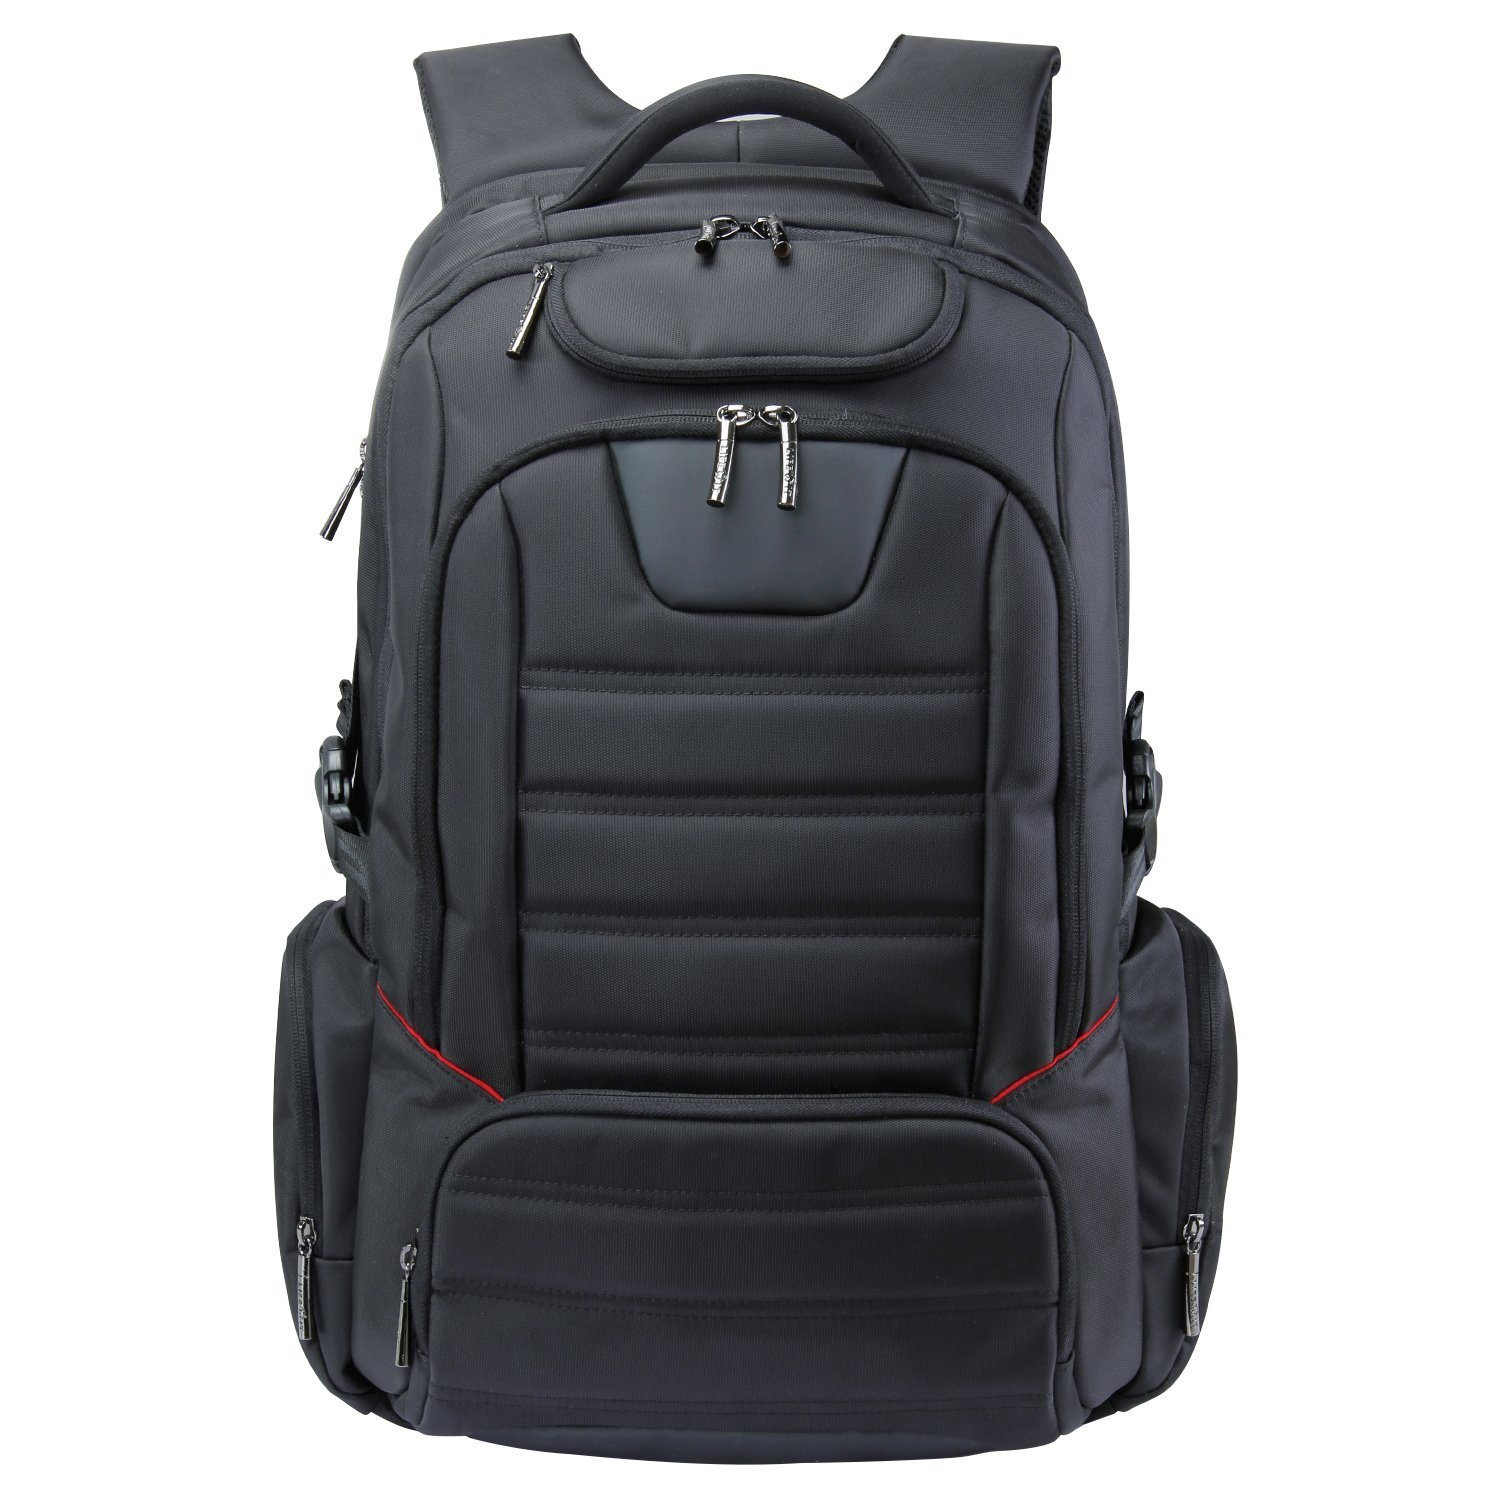 43e381cabf Amazon.com  Lifewit Large Laptop Backpack for Men